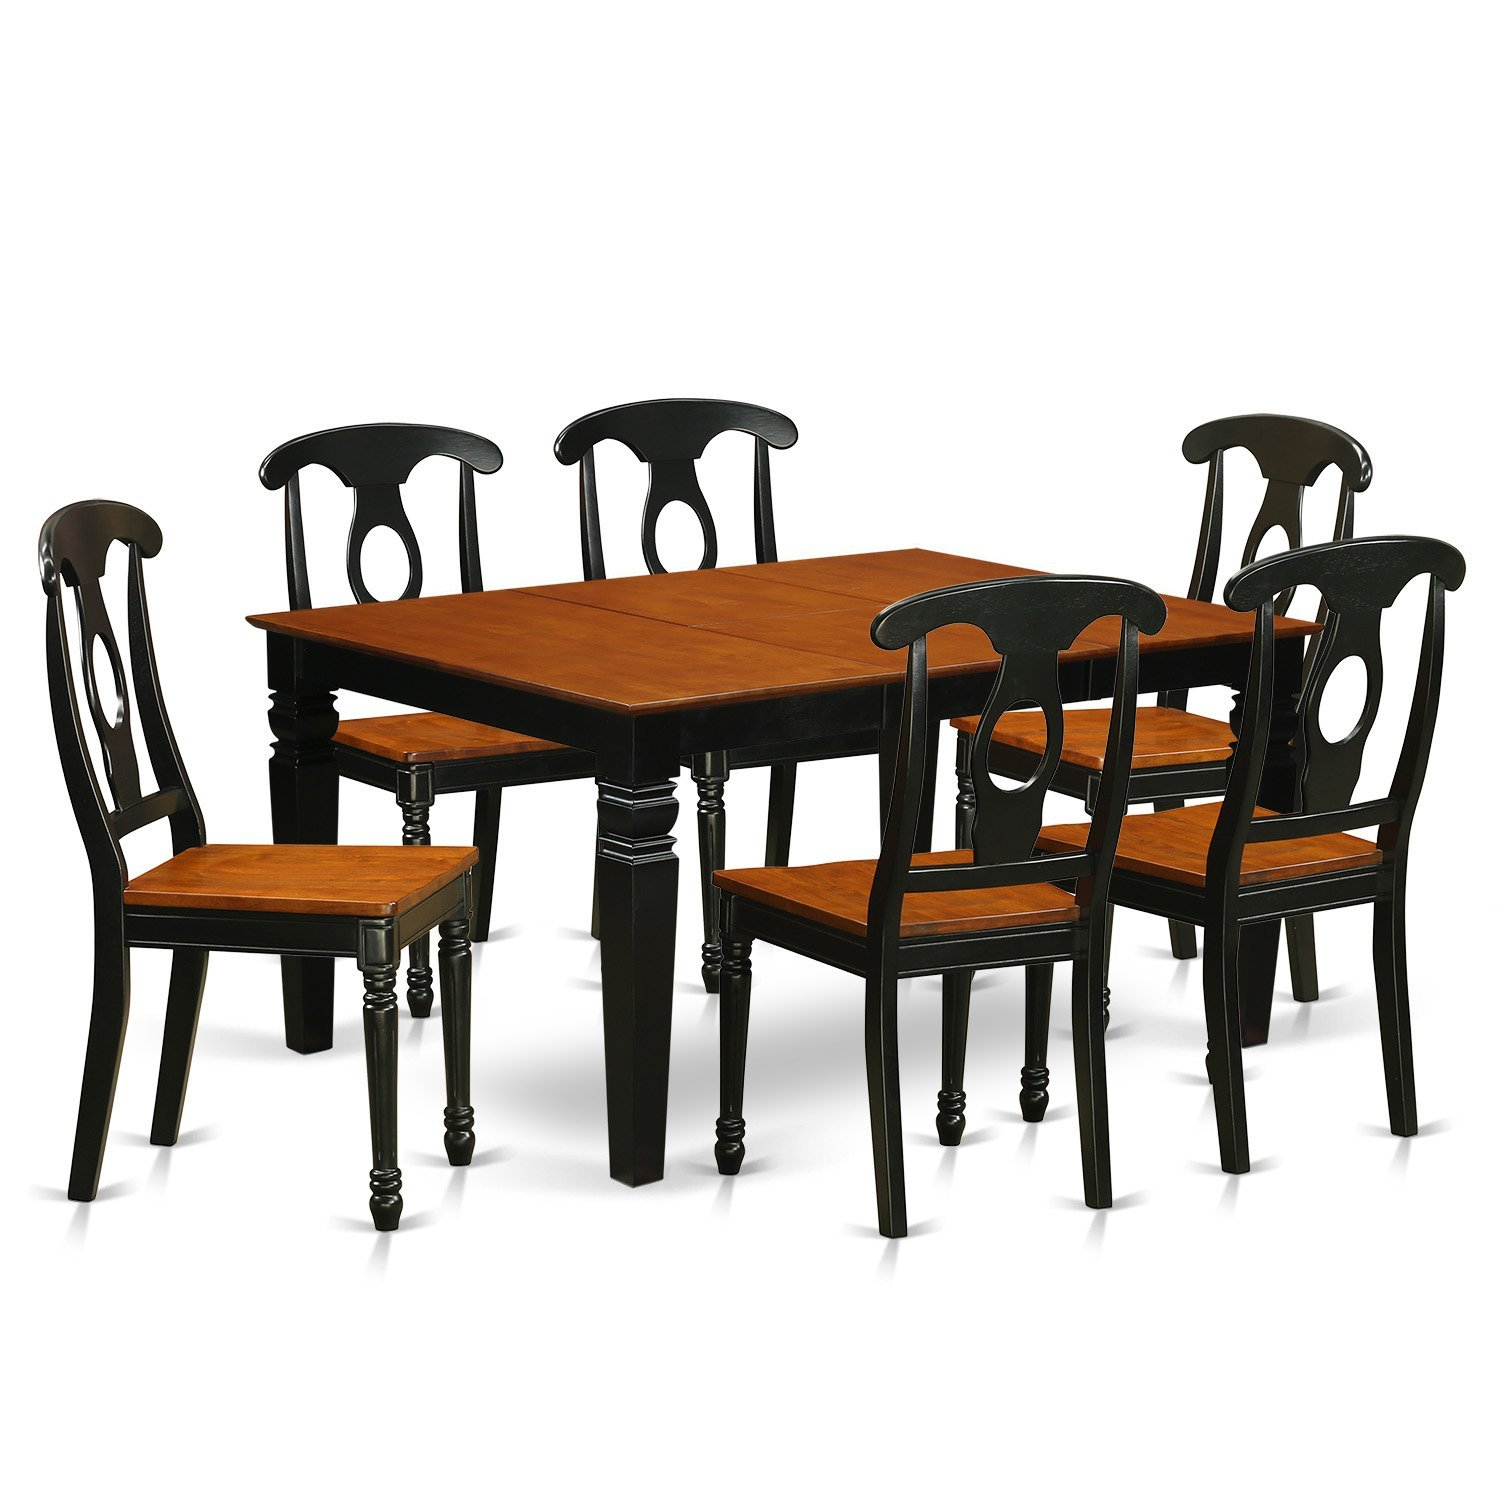 East West Furniture Weston WEKE7-BCH-W 7 Pc Set with a Kitchen Table and 6 Wood Dining Chairs, Black